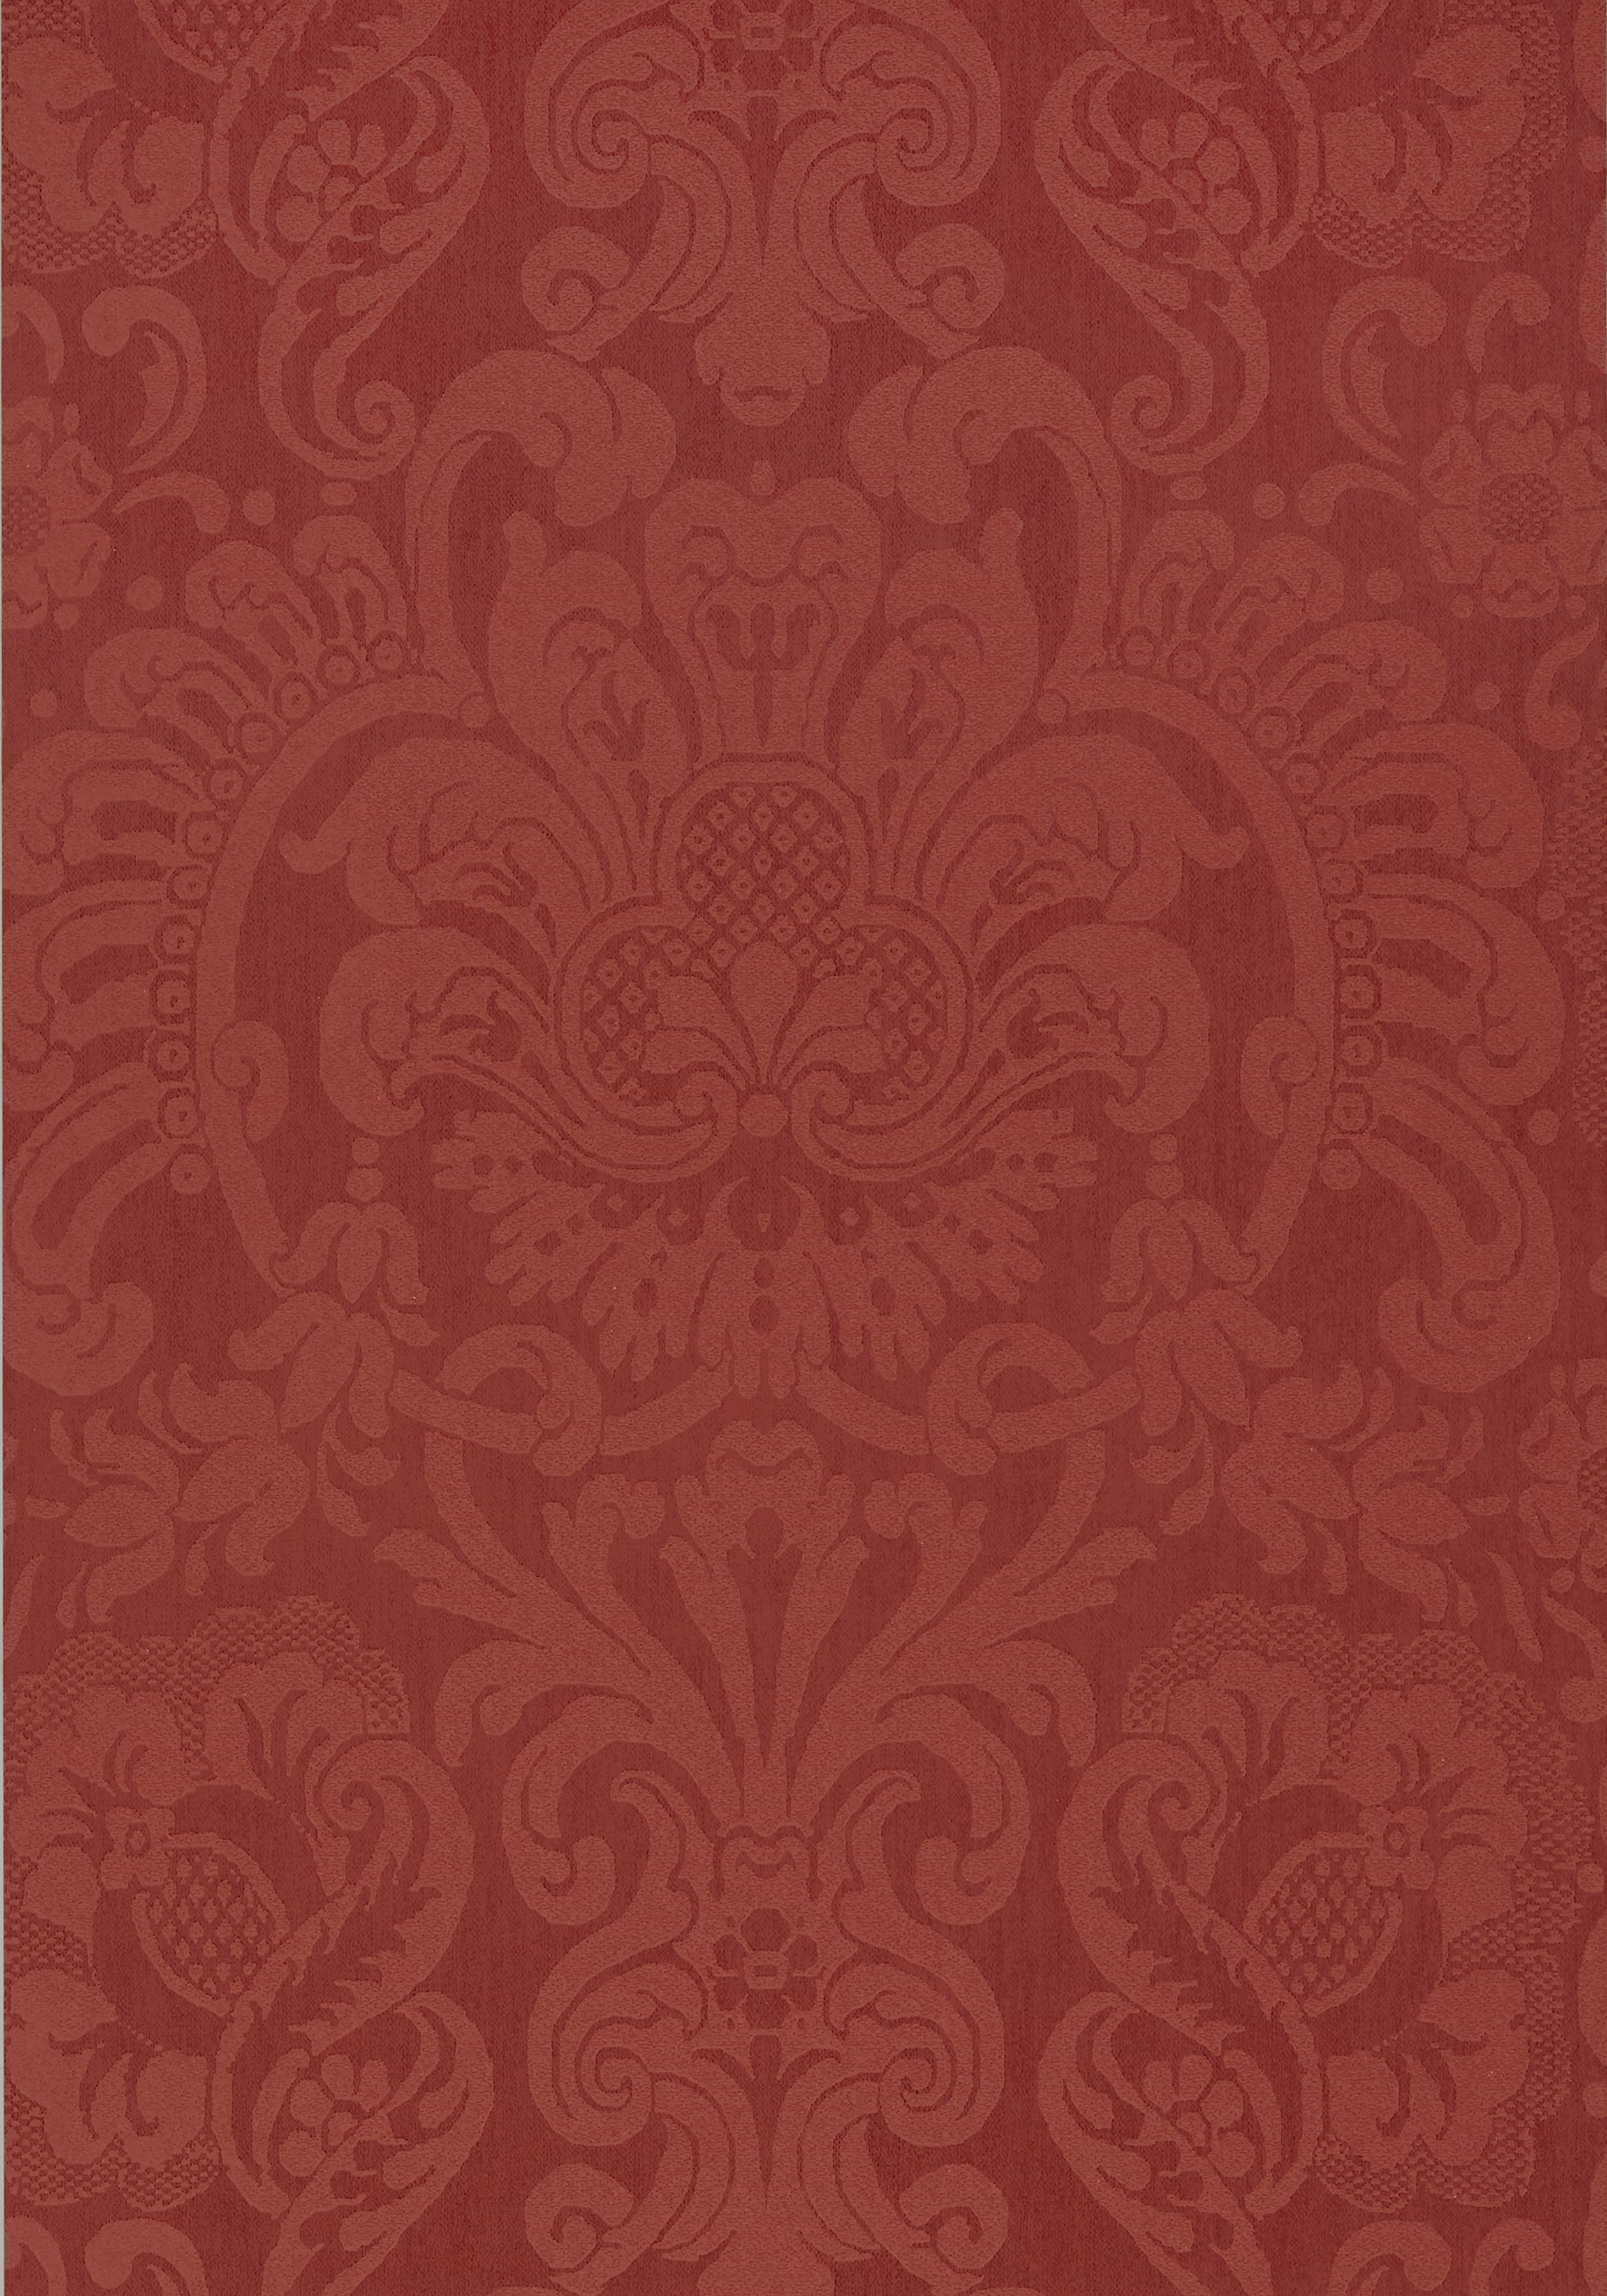 DORIAN DAMASK, Red, T89106, Collection Damask Resource 4 from Thibaut